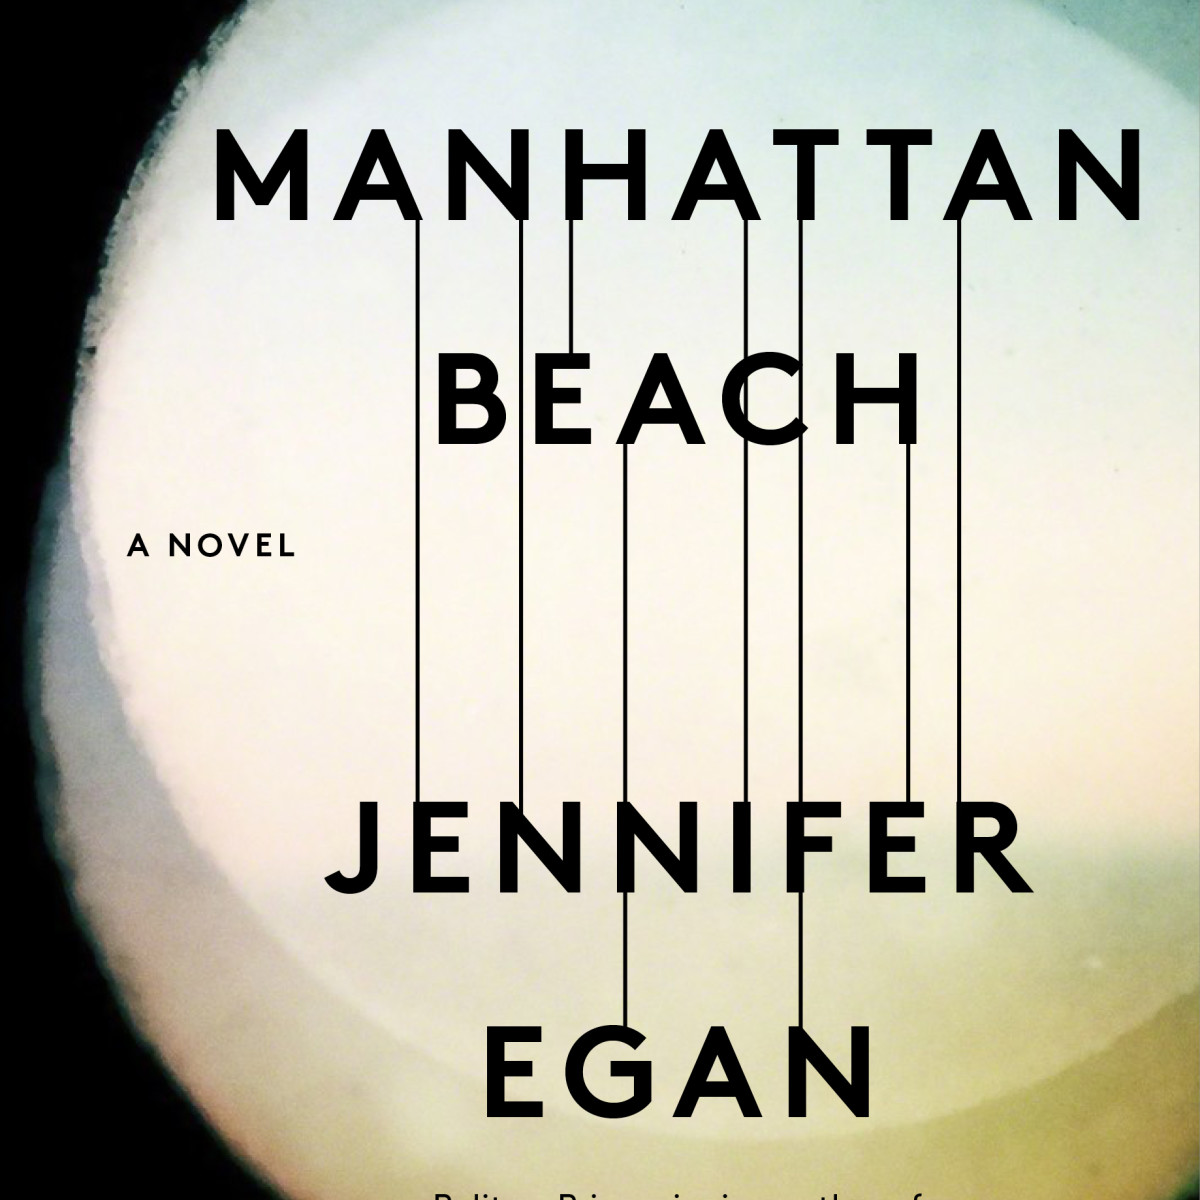 Manhattan Beach novel by Jennifer Egan